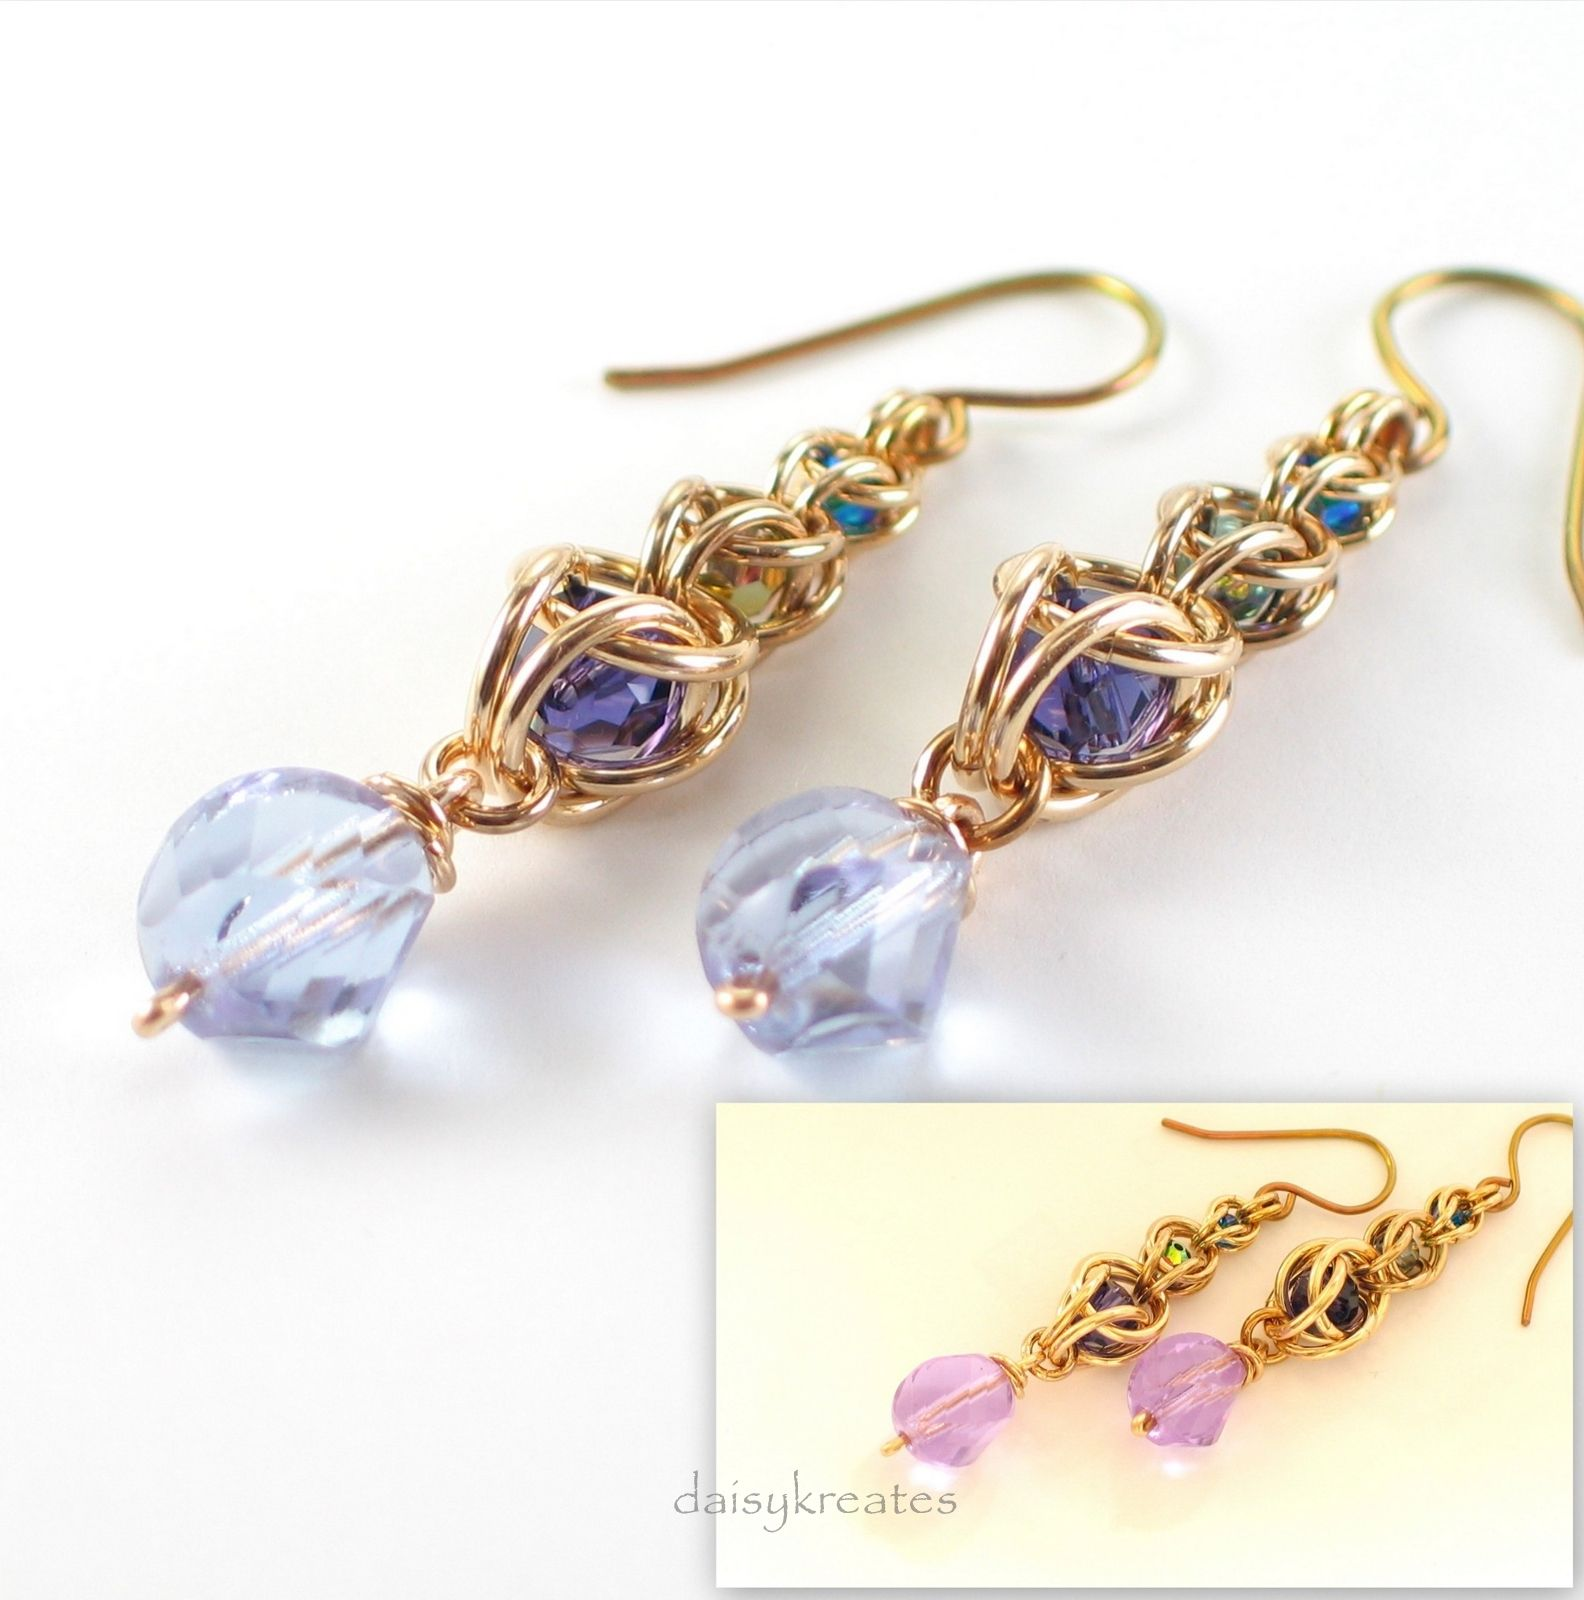 Multicolor Golden Harvest Earrings with Captive Crystals and Color ...